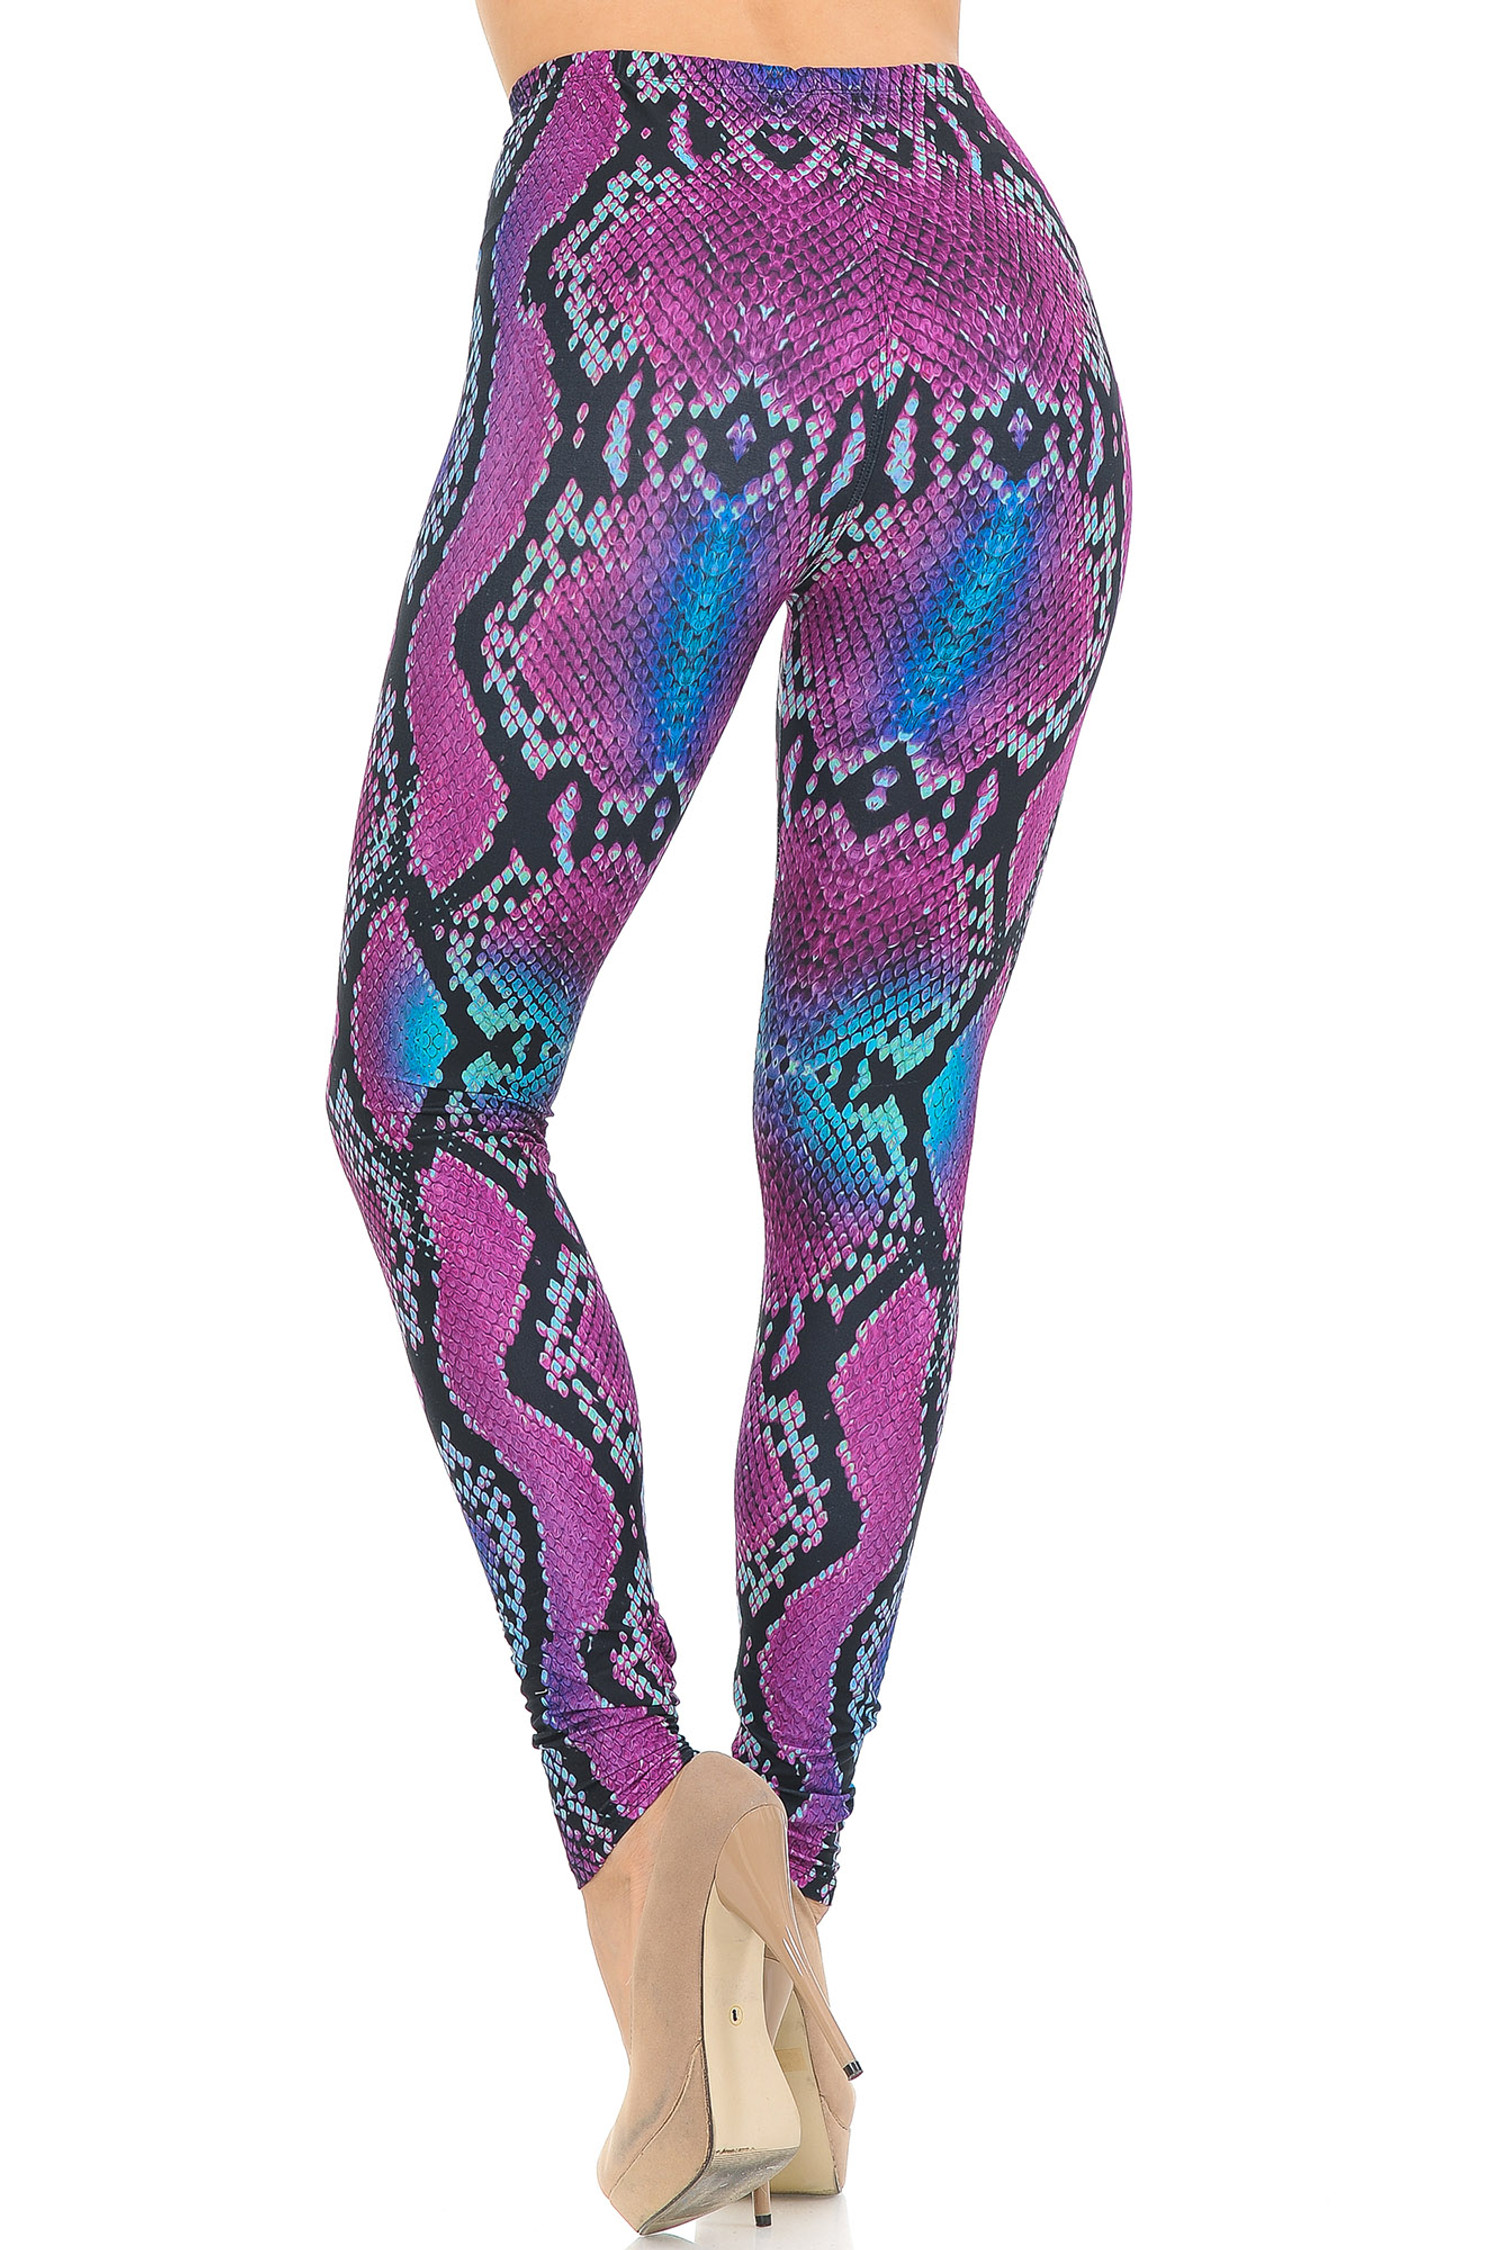 Creamy Soft Pink and Blue Snakeskin Leggings - USA Fashion™